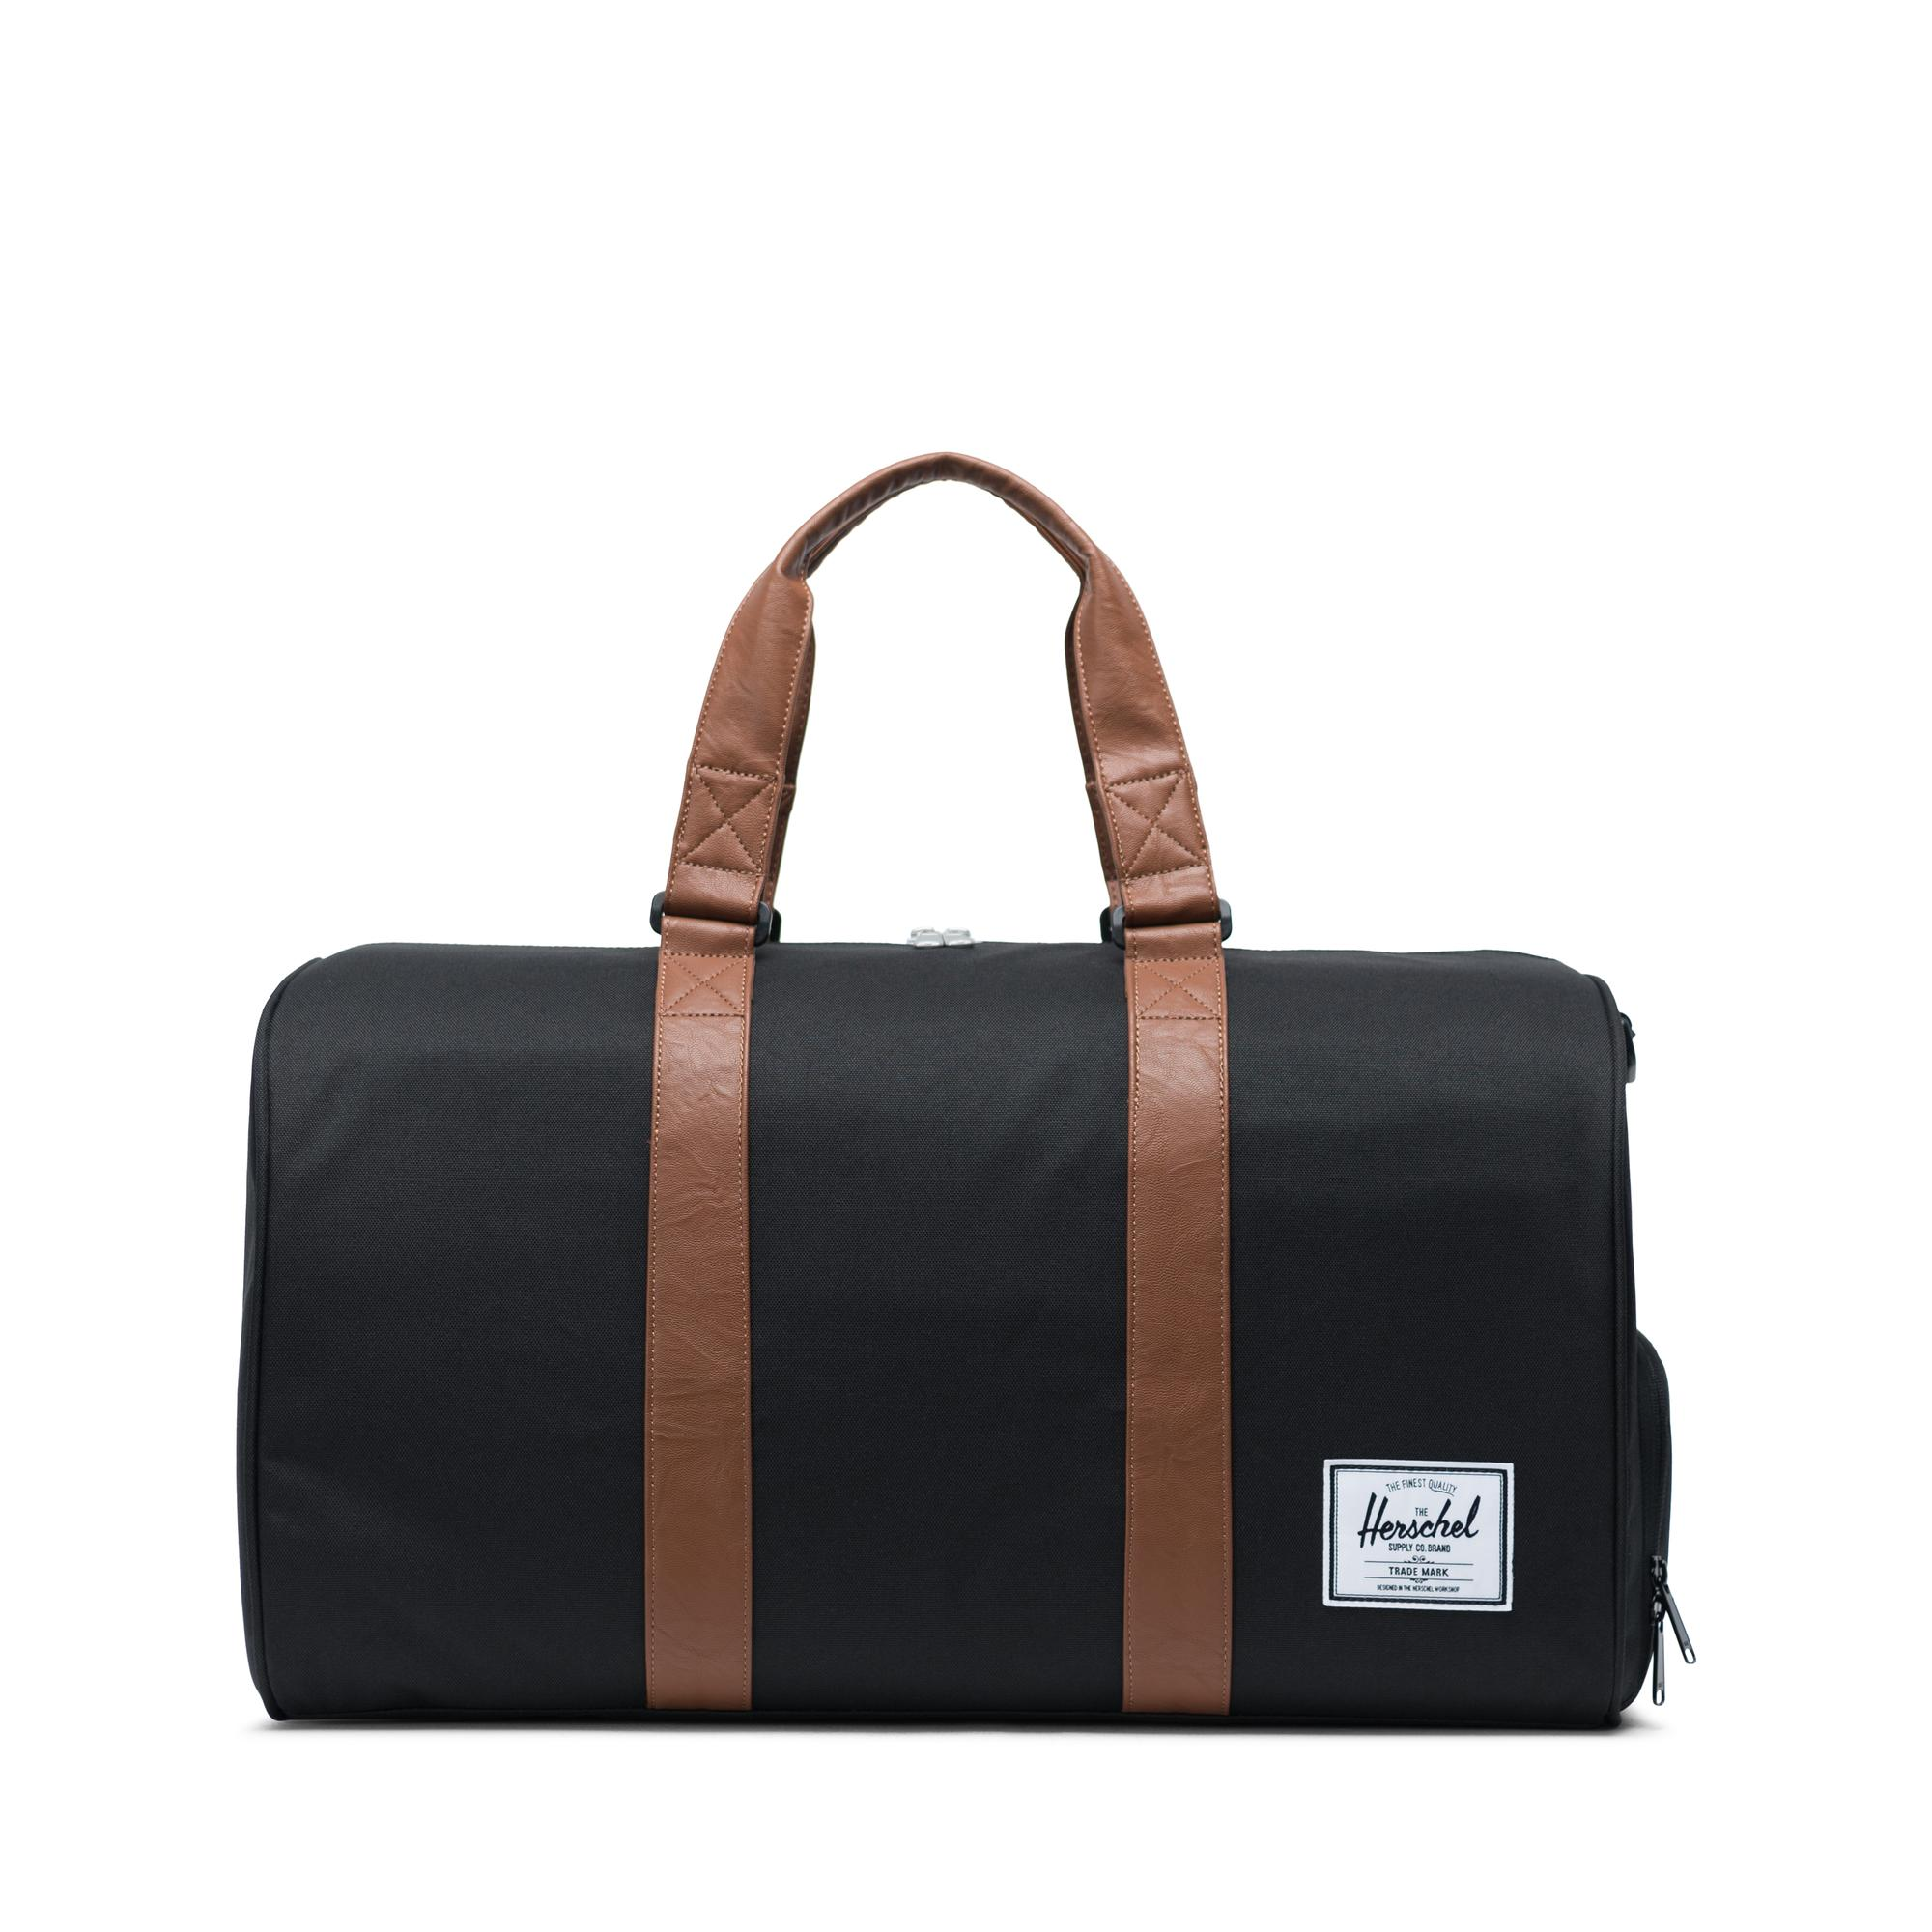 9422a04c6ea8 Novel Duffle